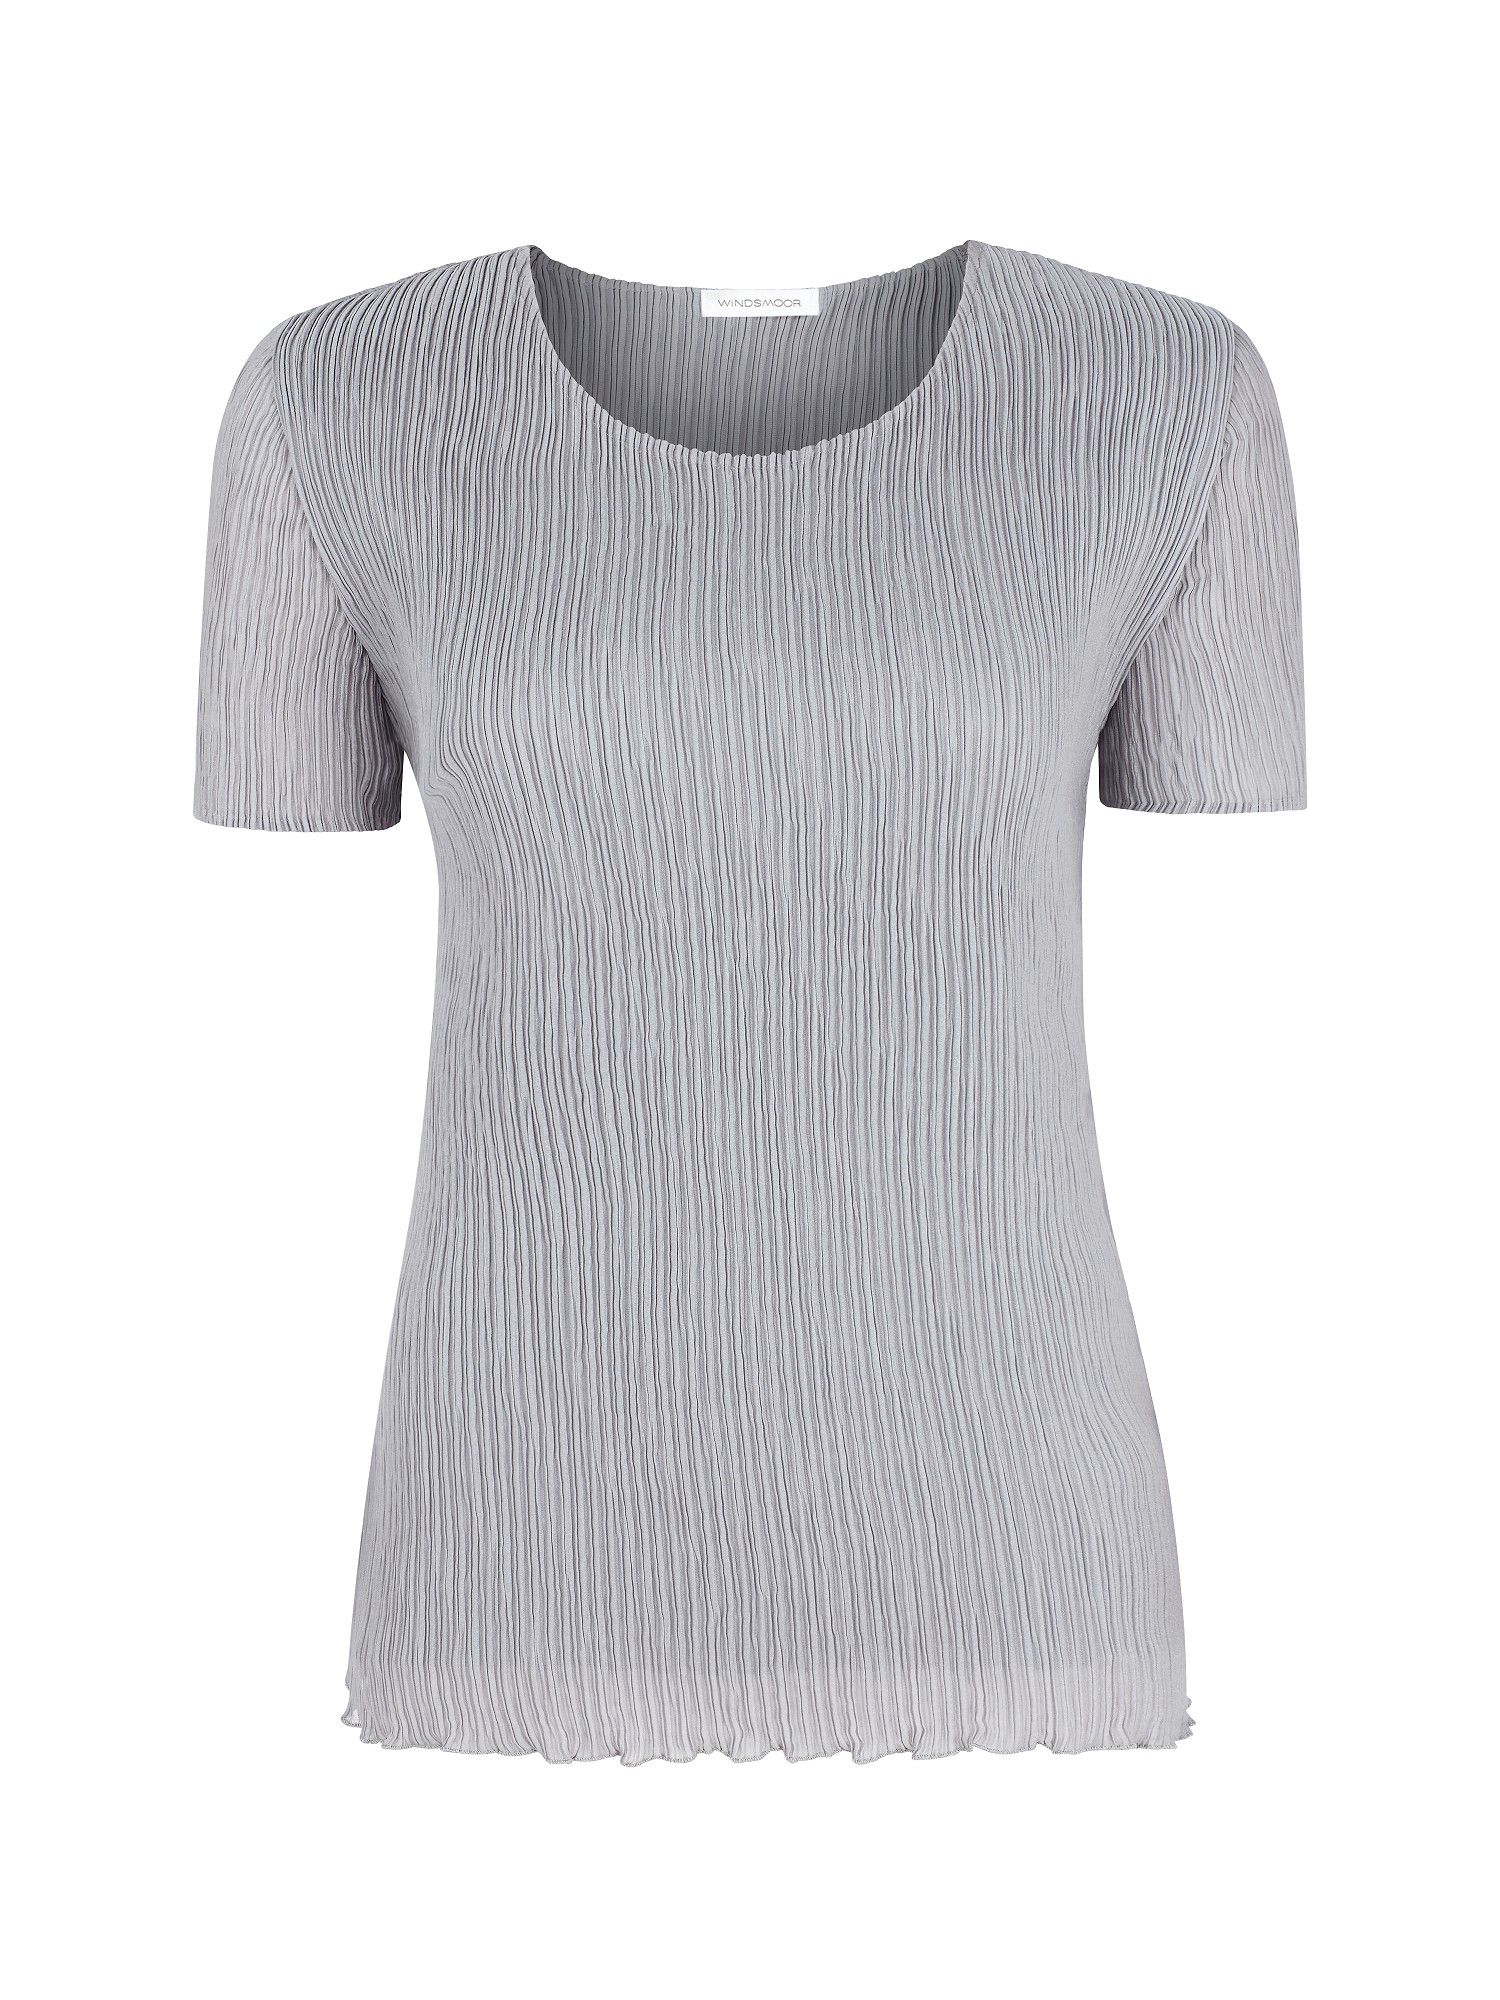 Pale grey crinkle top